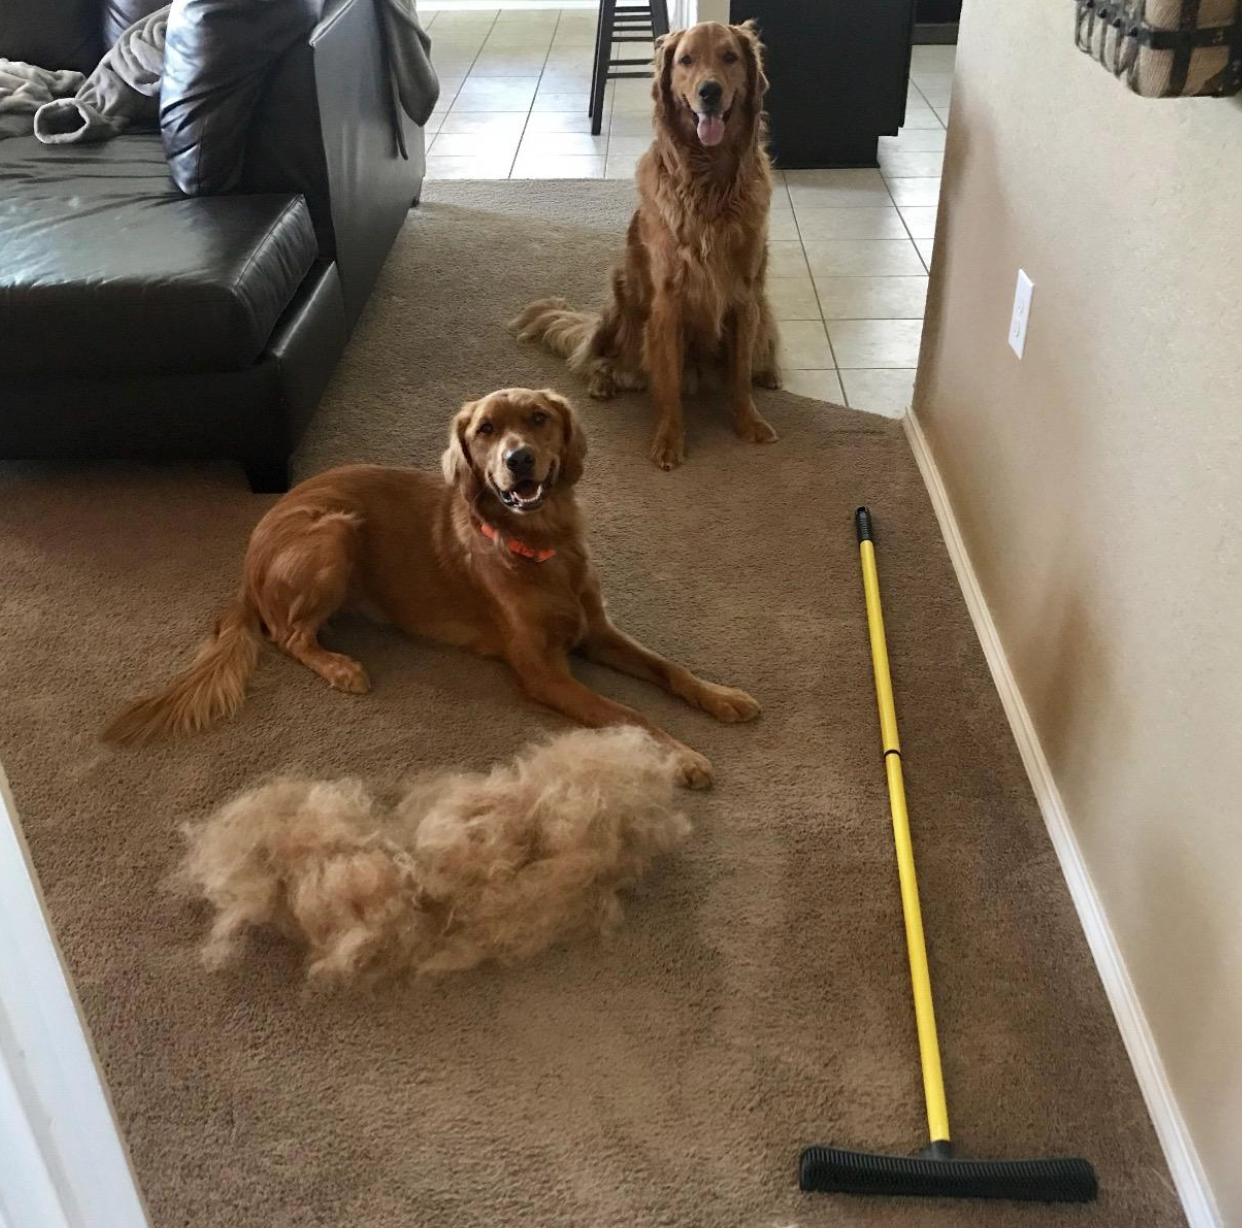 reviewer image of two dogs sitting on carpet next to a mound of fur swept up the the rubber broom